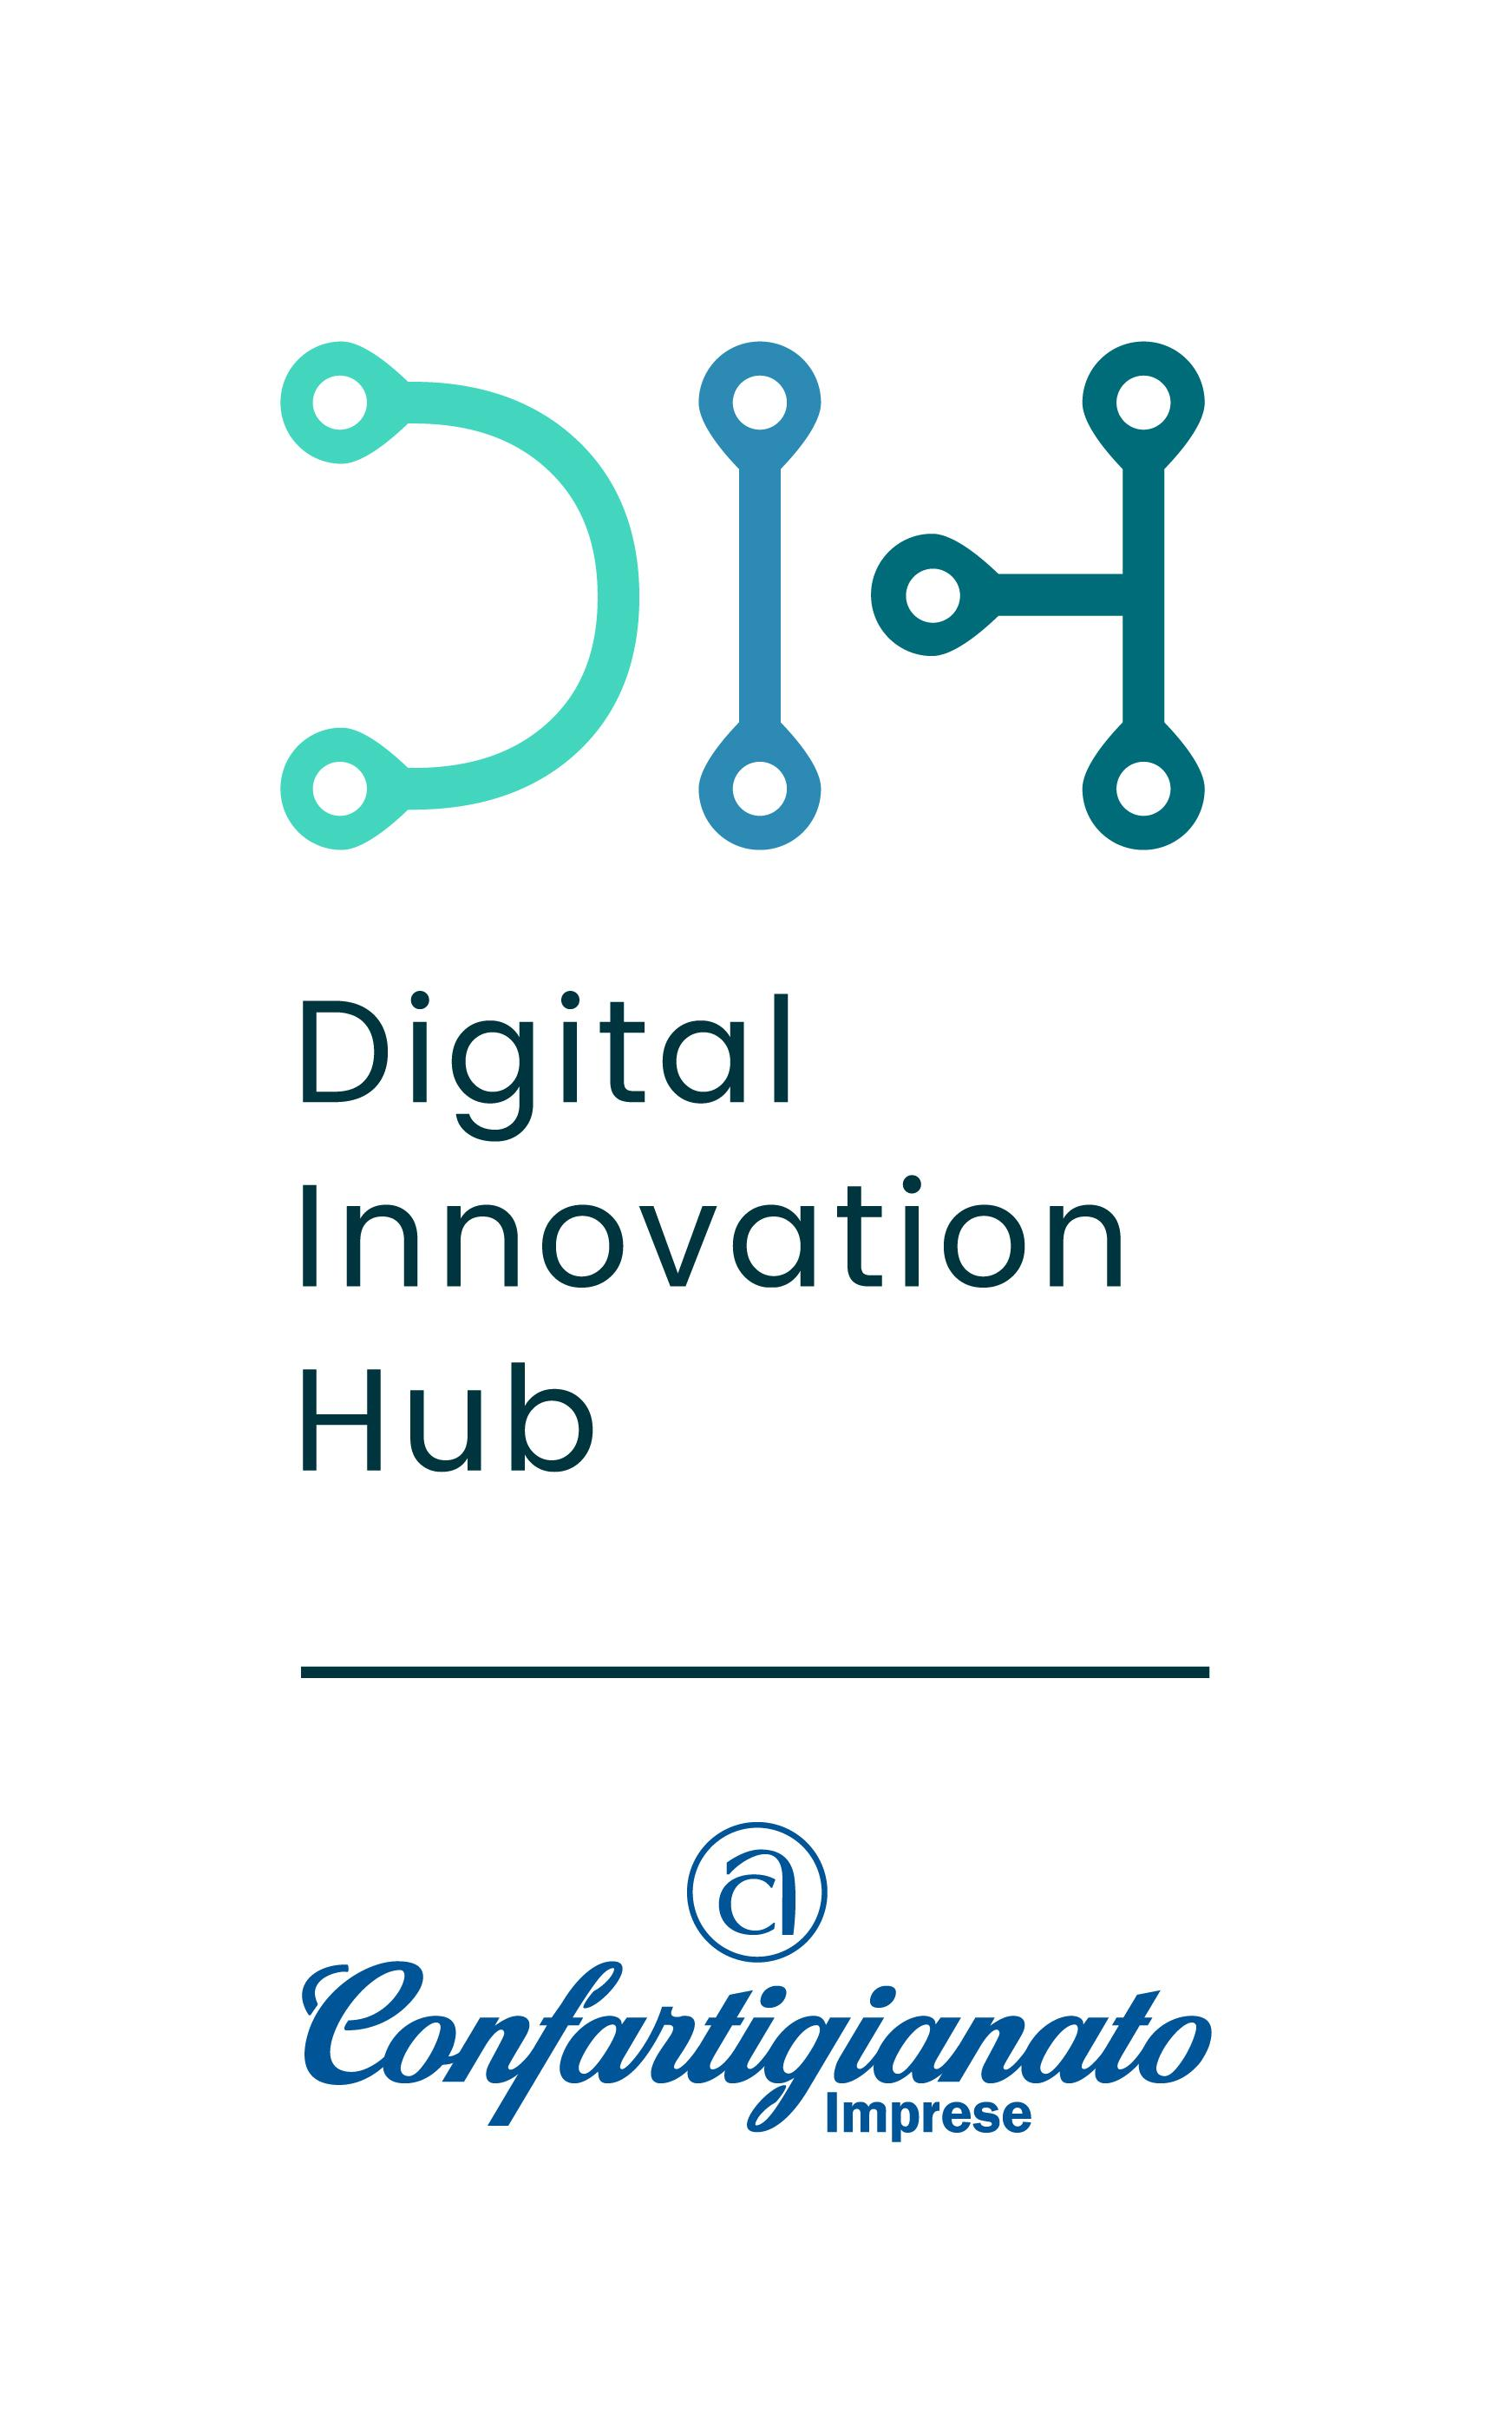 Digital Innovation Hub di Confartigianato